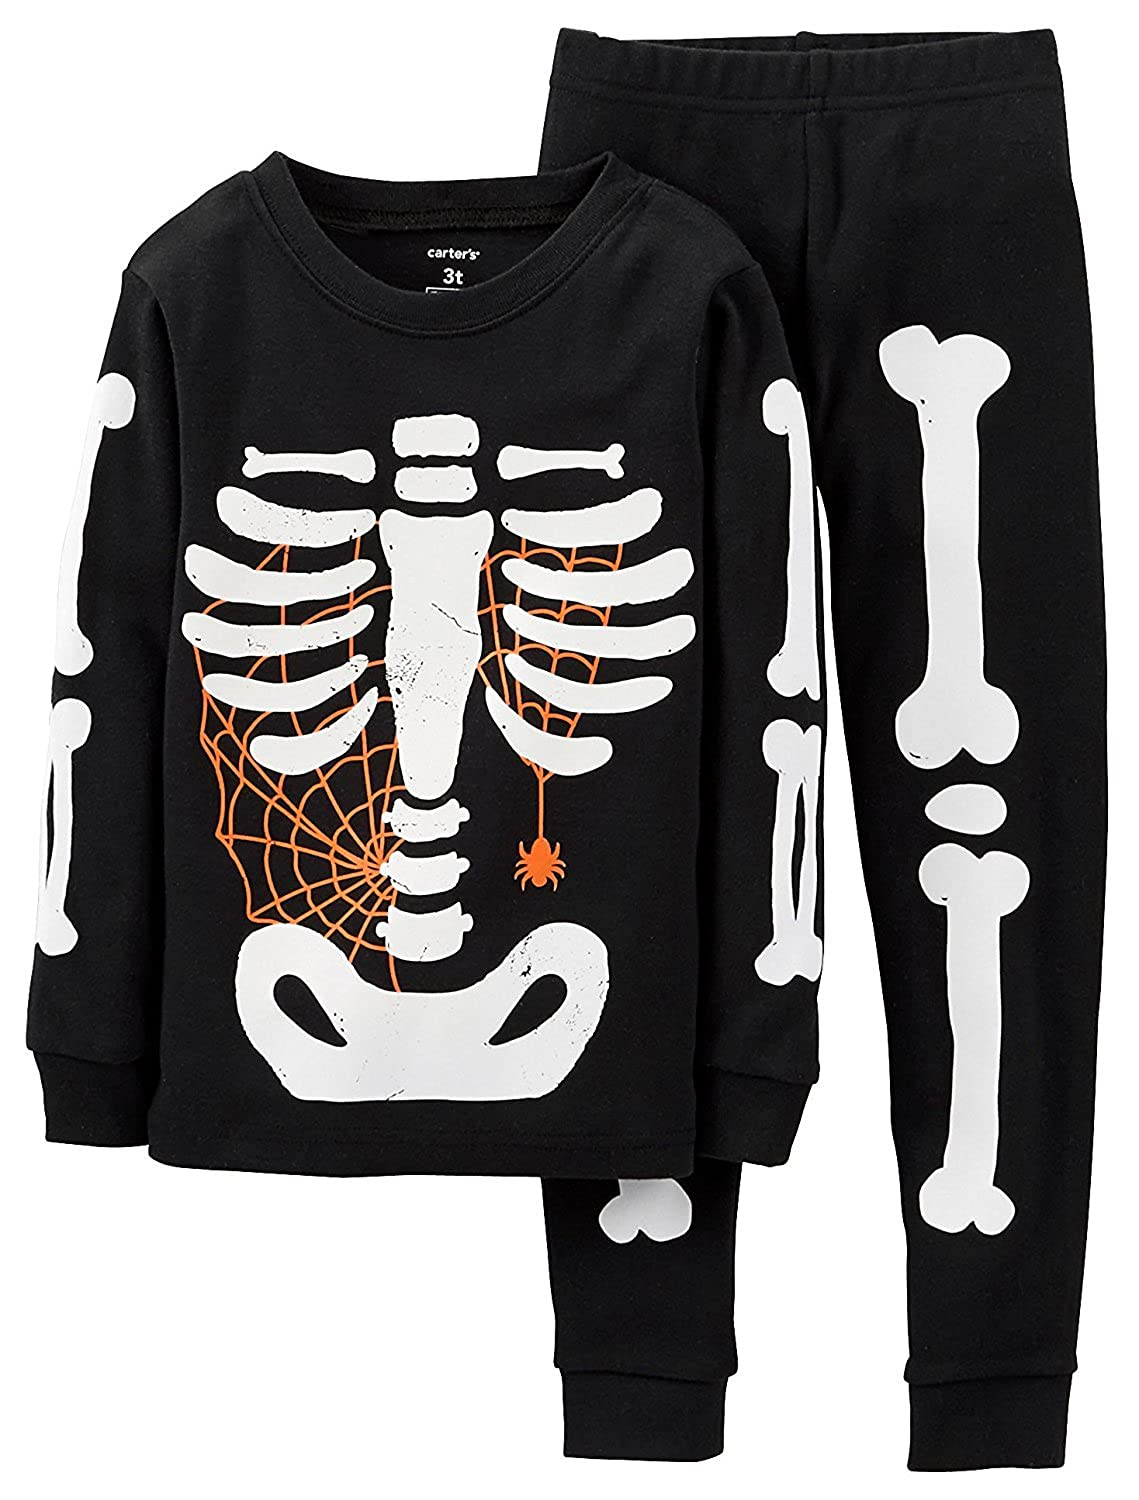 Carter's Boys' Glow-in-the-dark Halloween Pajamas Carters